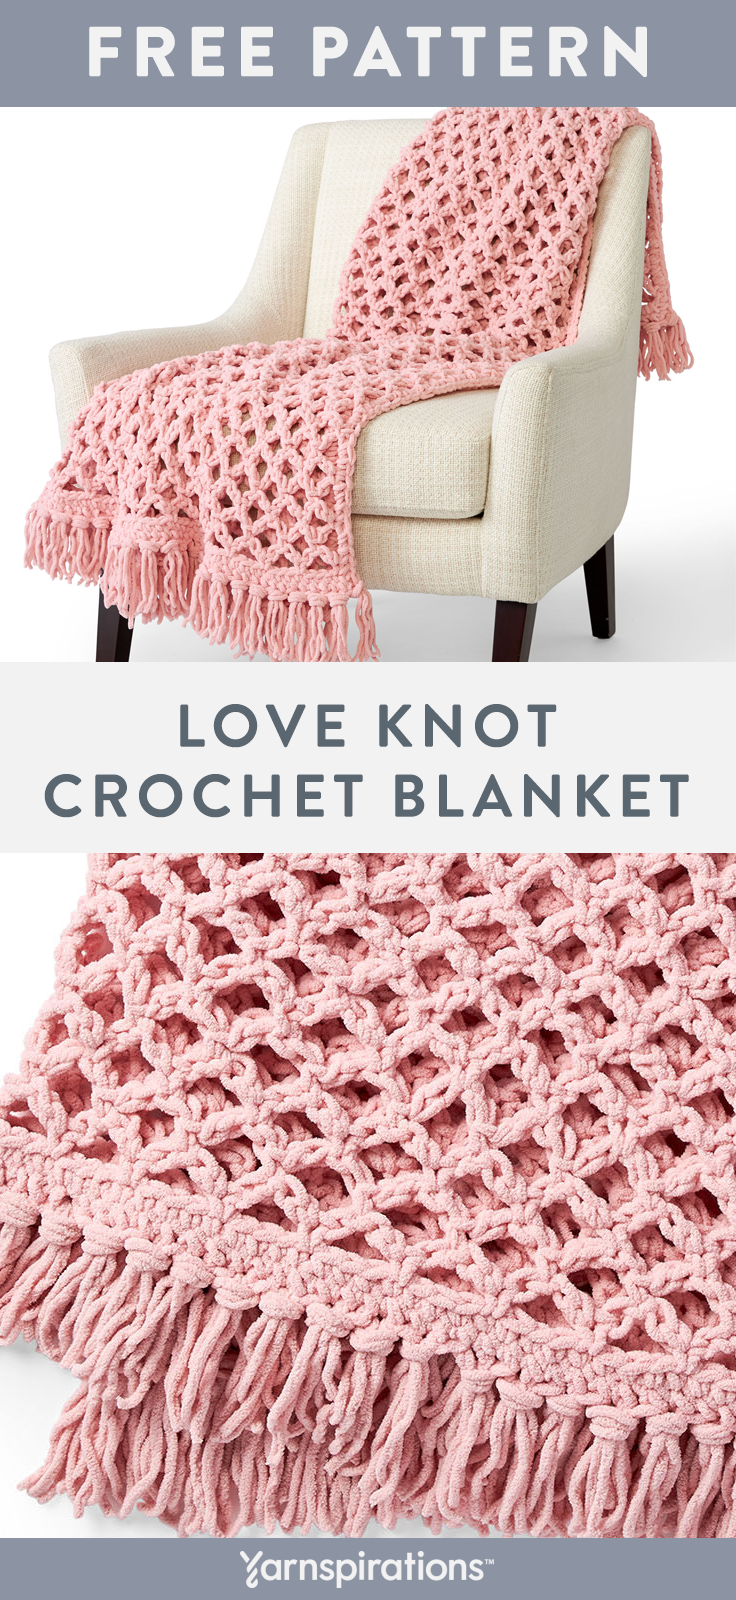 Free Love Knot Crochet Blanket pattern using Bernat Blanket yarn. Featuring the open and airy Solomon's knot crochet stitch. Crocheted with strategically placed single crochet and chain stitches, this pattern is easy to follow and works up quickly into a plush, lacy fabric. #yarnspirations #freecrochetpattern #crochetthrow #crochetafghan #SolomansKnot #LoveKnot #CrochetLace #LaceCrochet #ValentinesCrochet #DIYValentines #ValentinesDay #ValentinesGift #BernatYarn #BernatBlanket